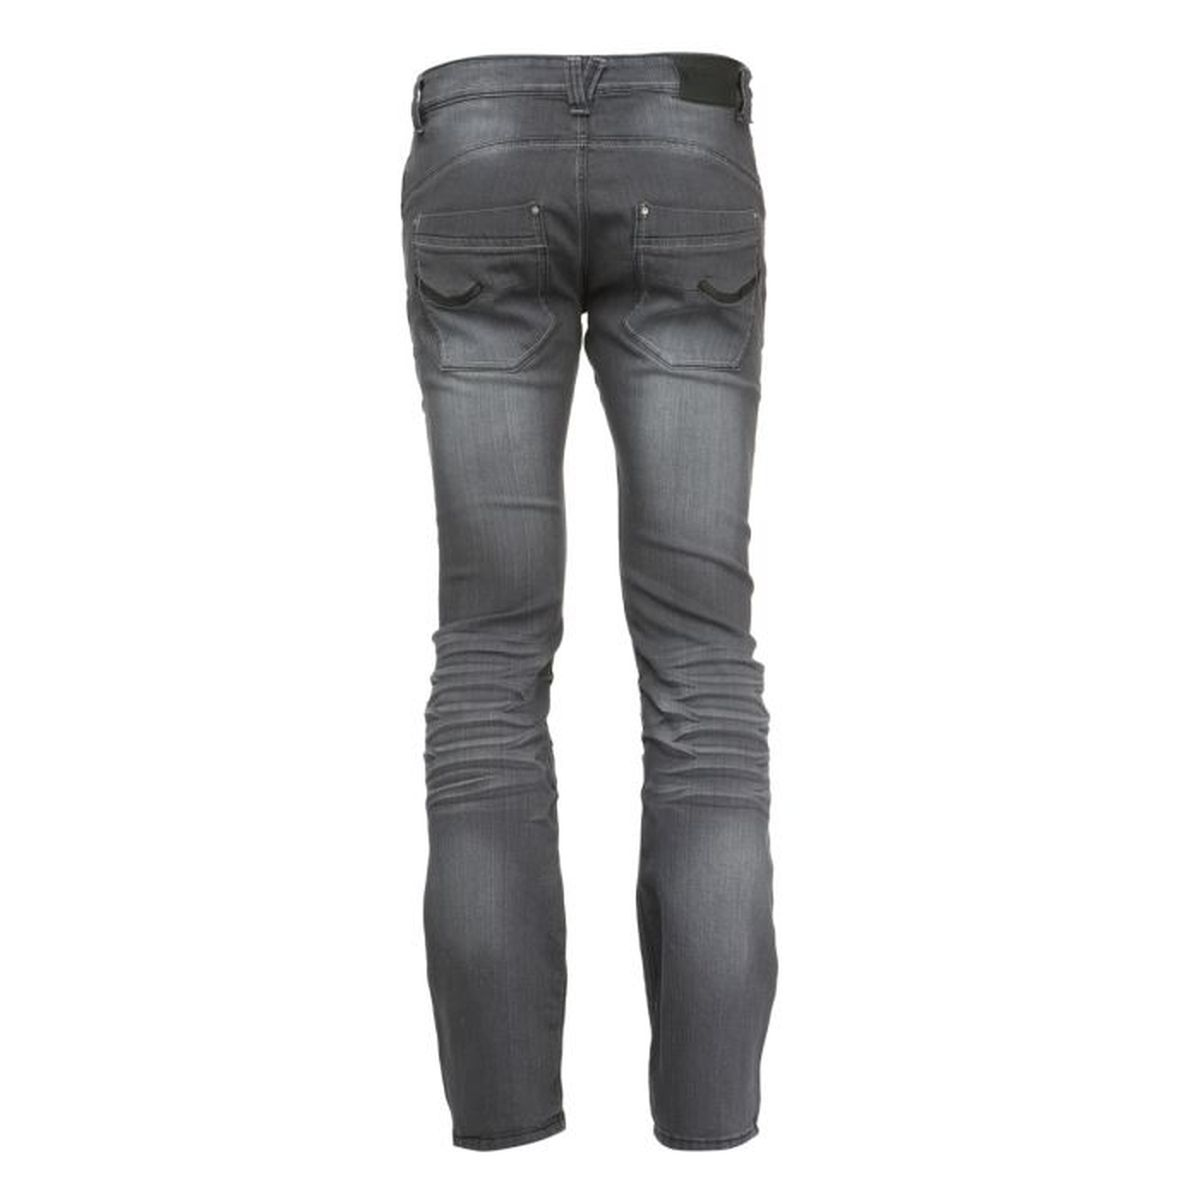 buy popular 217d8 95ac9 biaggio-jean-regular-dackarlok-homme.jpg